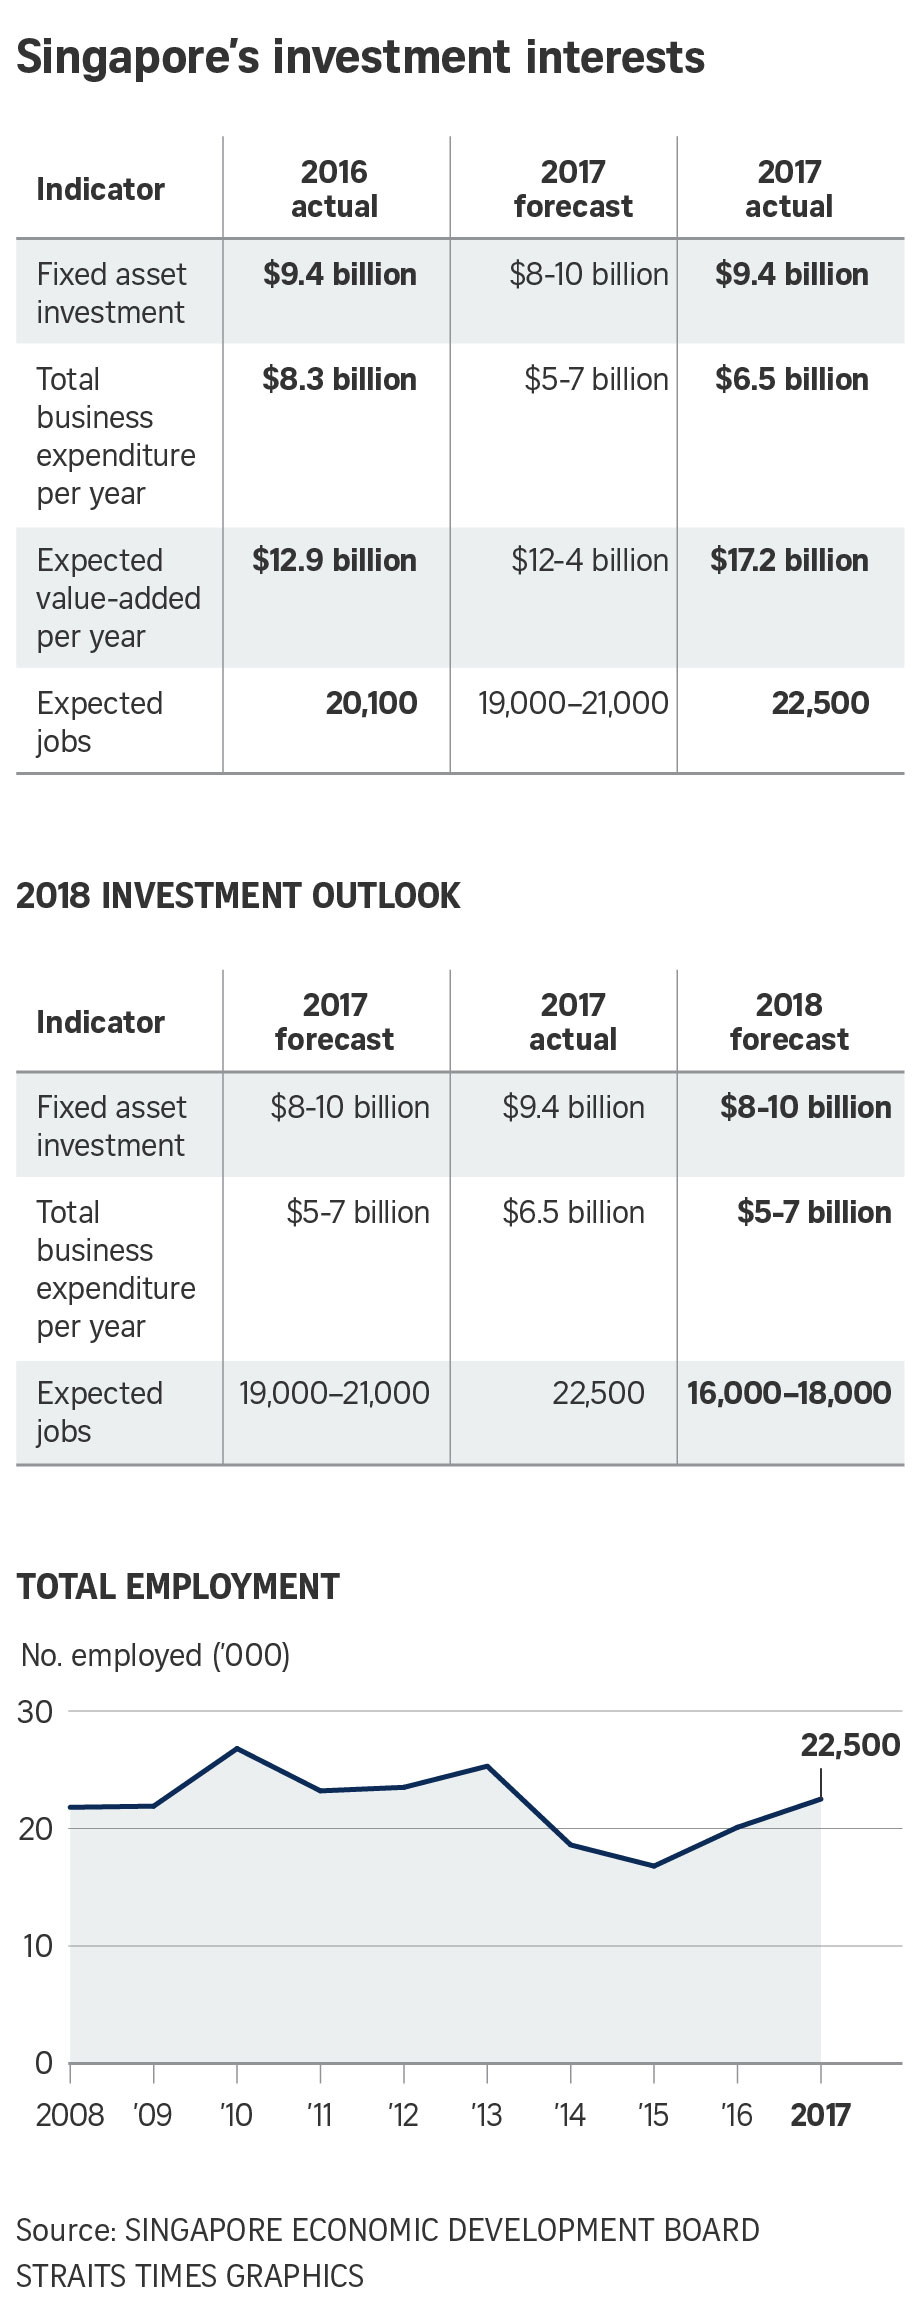 Singapore's investment interests